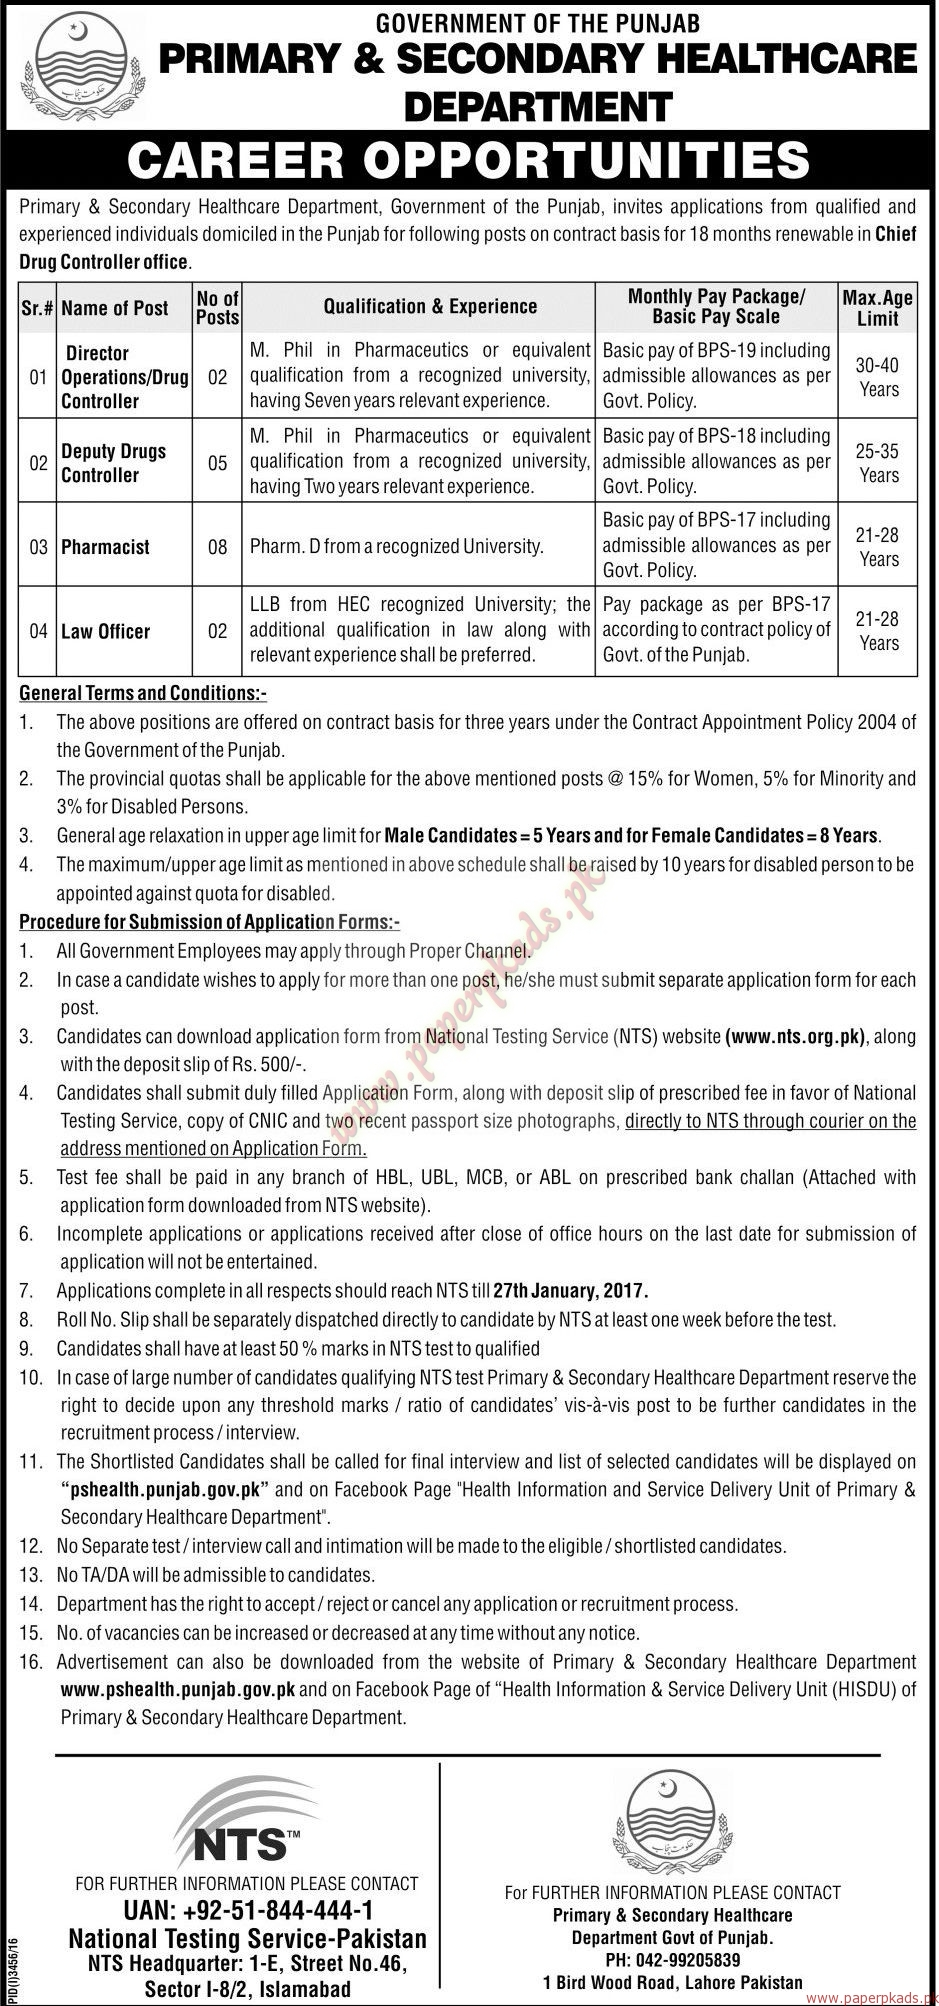 Government of the Punjab - Primary & Secondary HealthCare Department Jobs 1